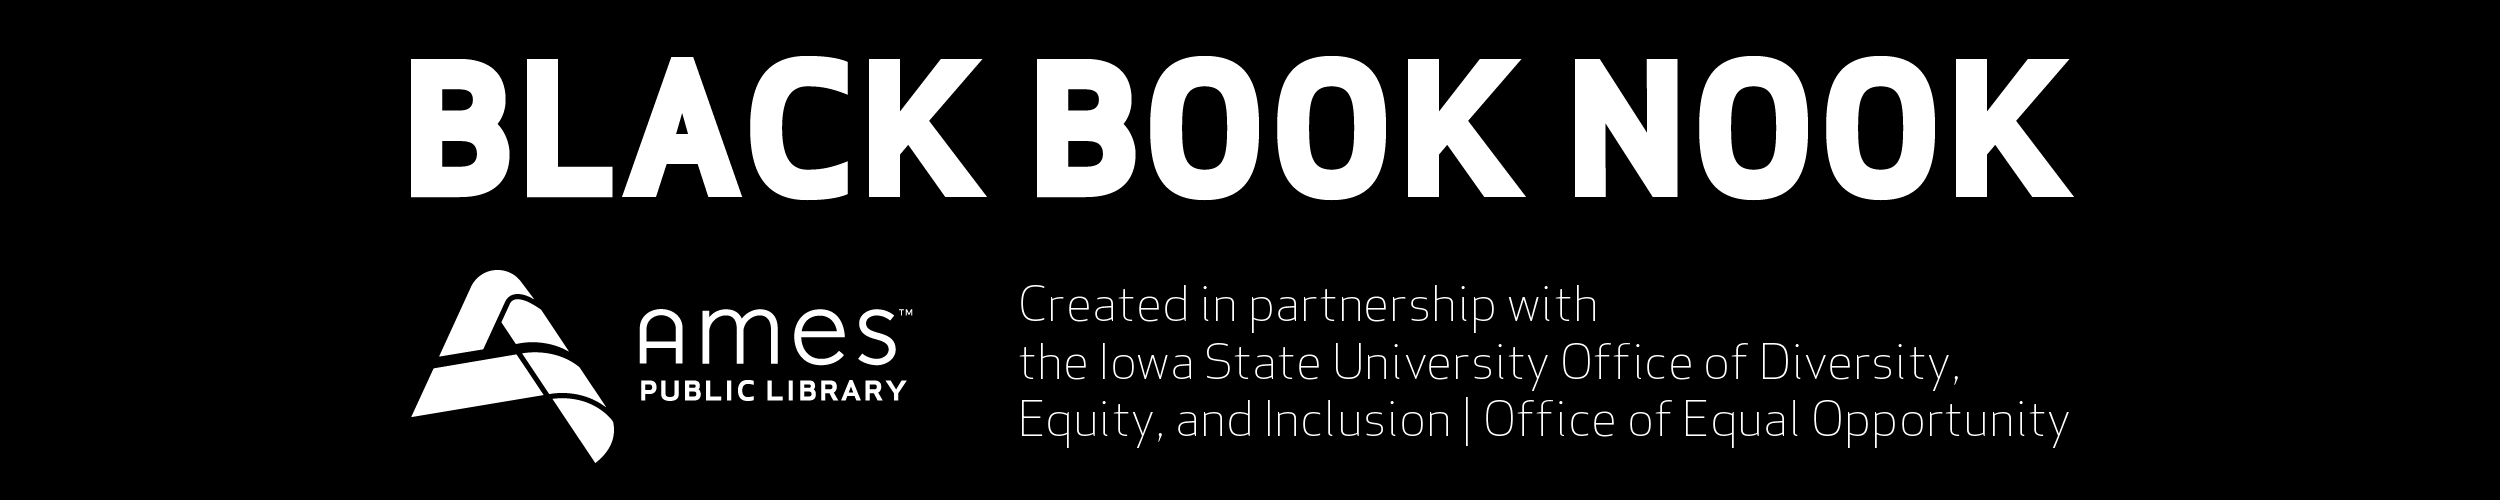 Black Book Nook. Ames Public Library. Created in partnership with the Iowa State University Office of Diversity, Equity, and Inclusion | Office of Equal Opportunity